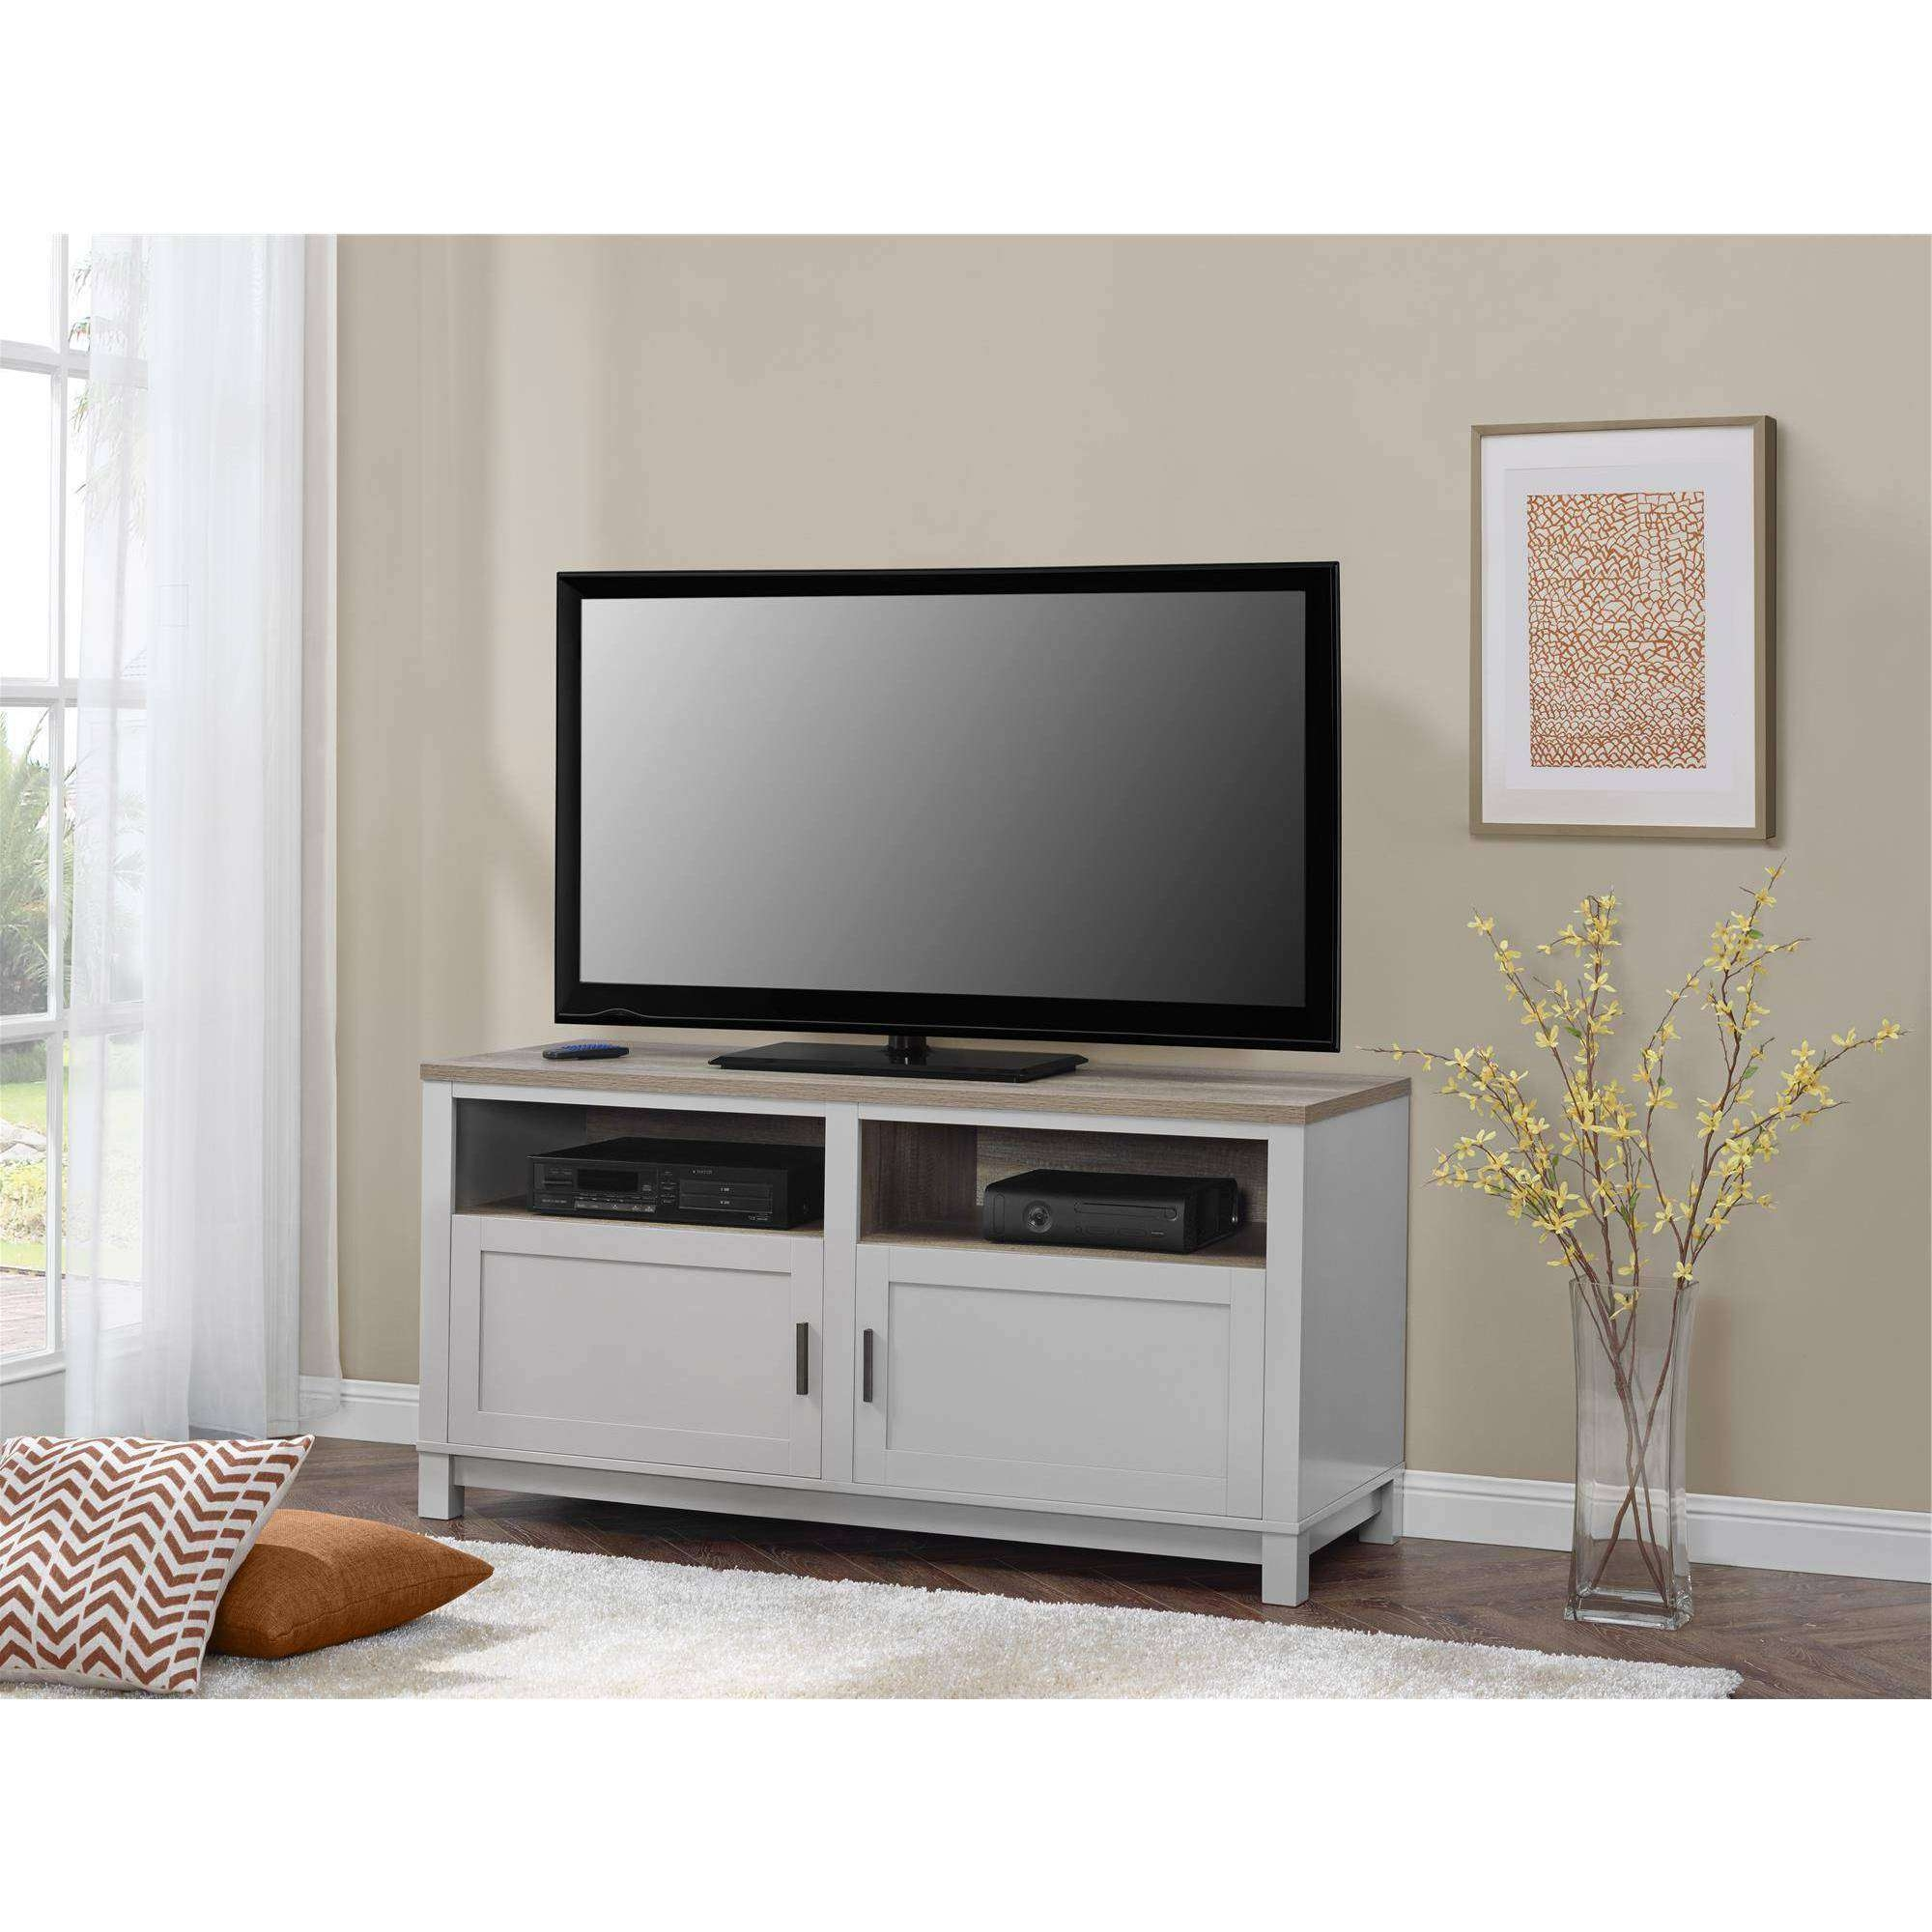 Better Homes And Gardens Langley Bay Tv Stand For Tvs Up To 60 Within Grey Wooden Tv Stands (View 2 of 15)